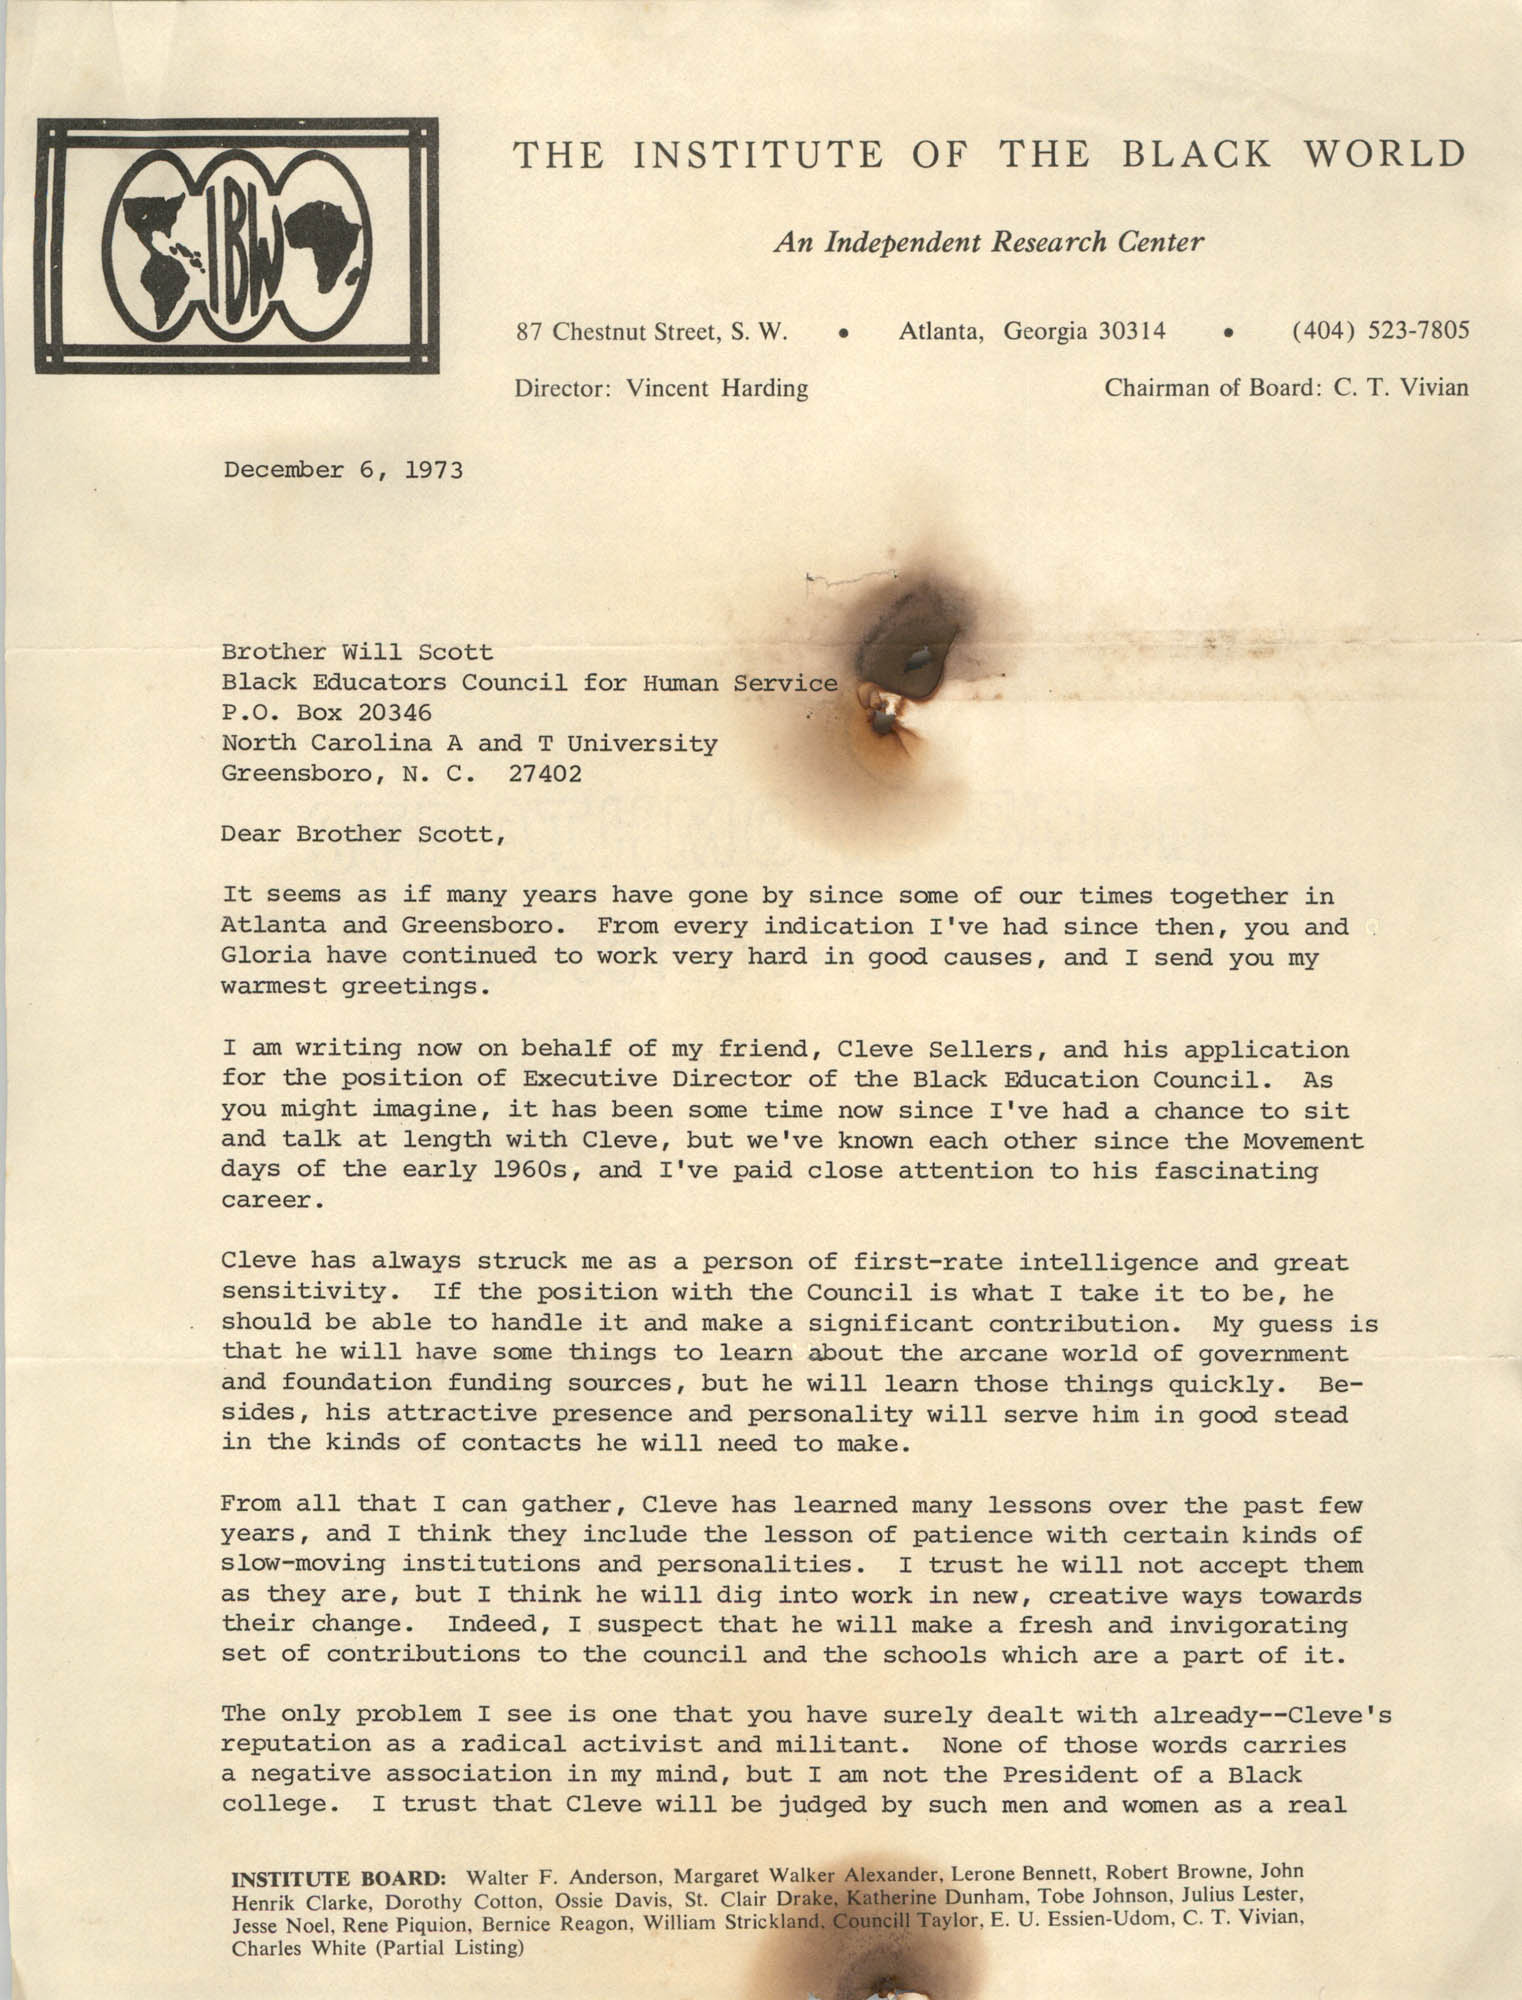 Letter from Vincent Harding to Will Scott, December 6, 1973